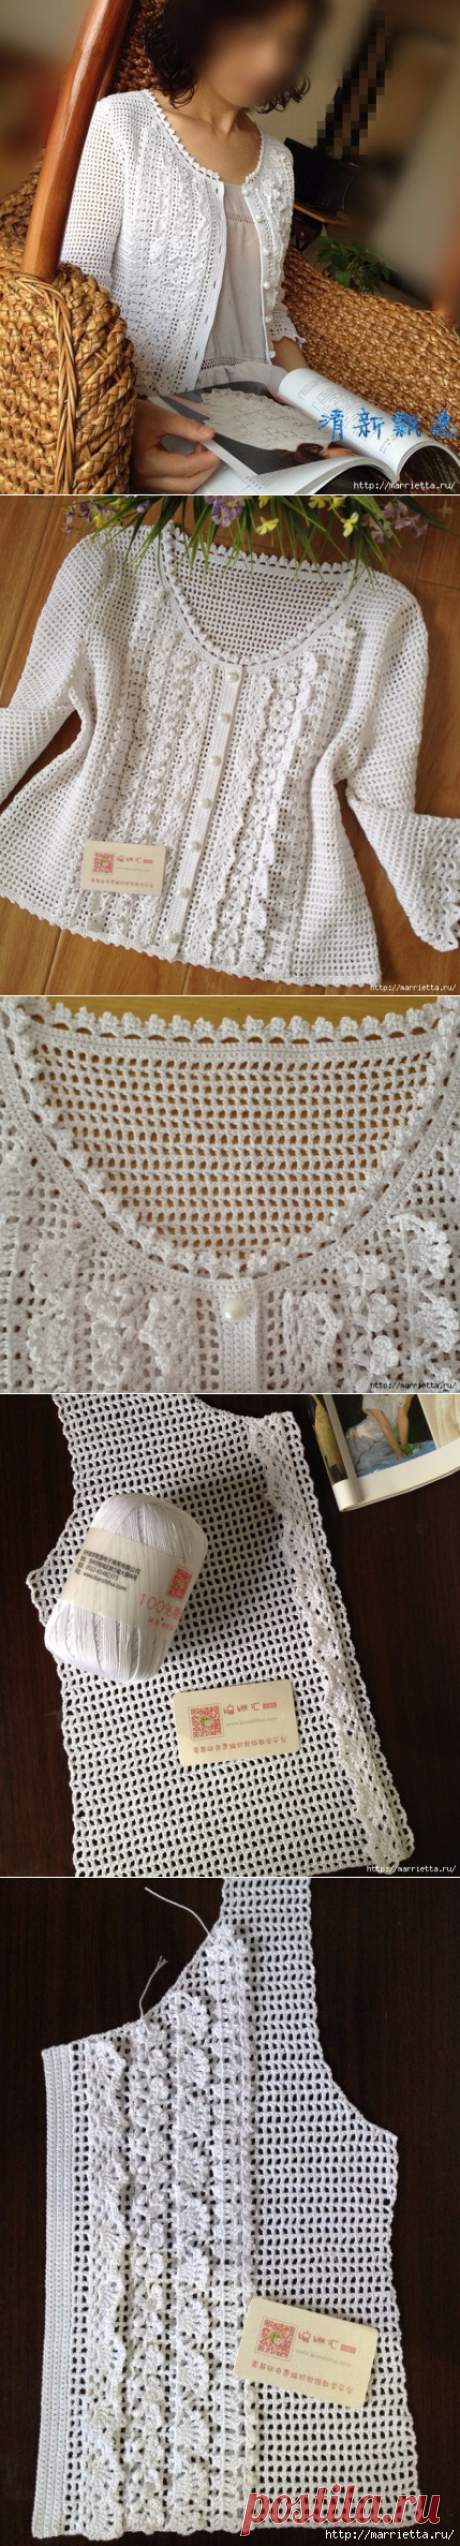 White jacket fillet knitting with ruches